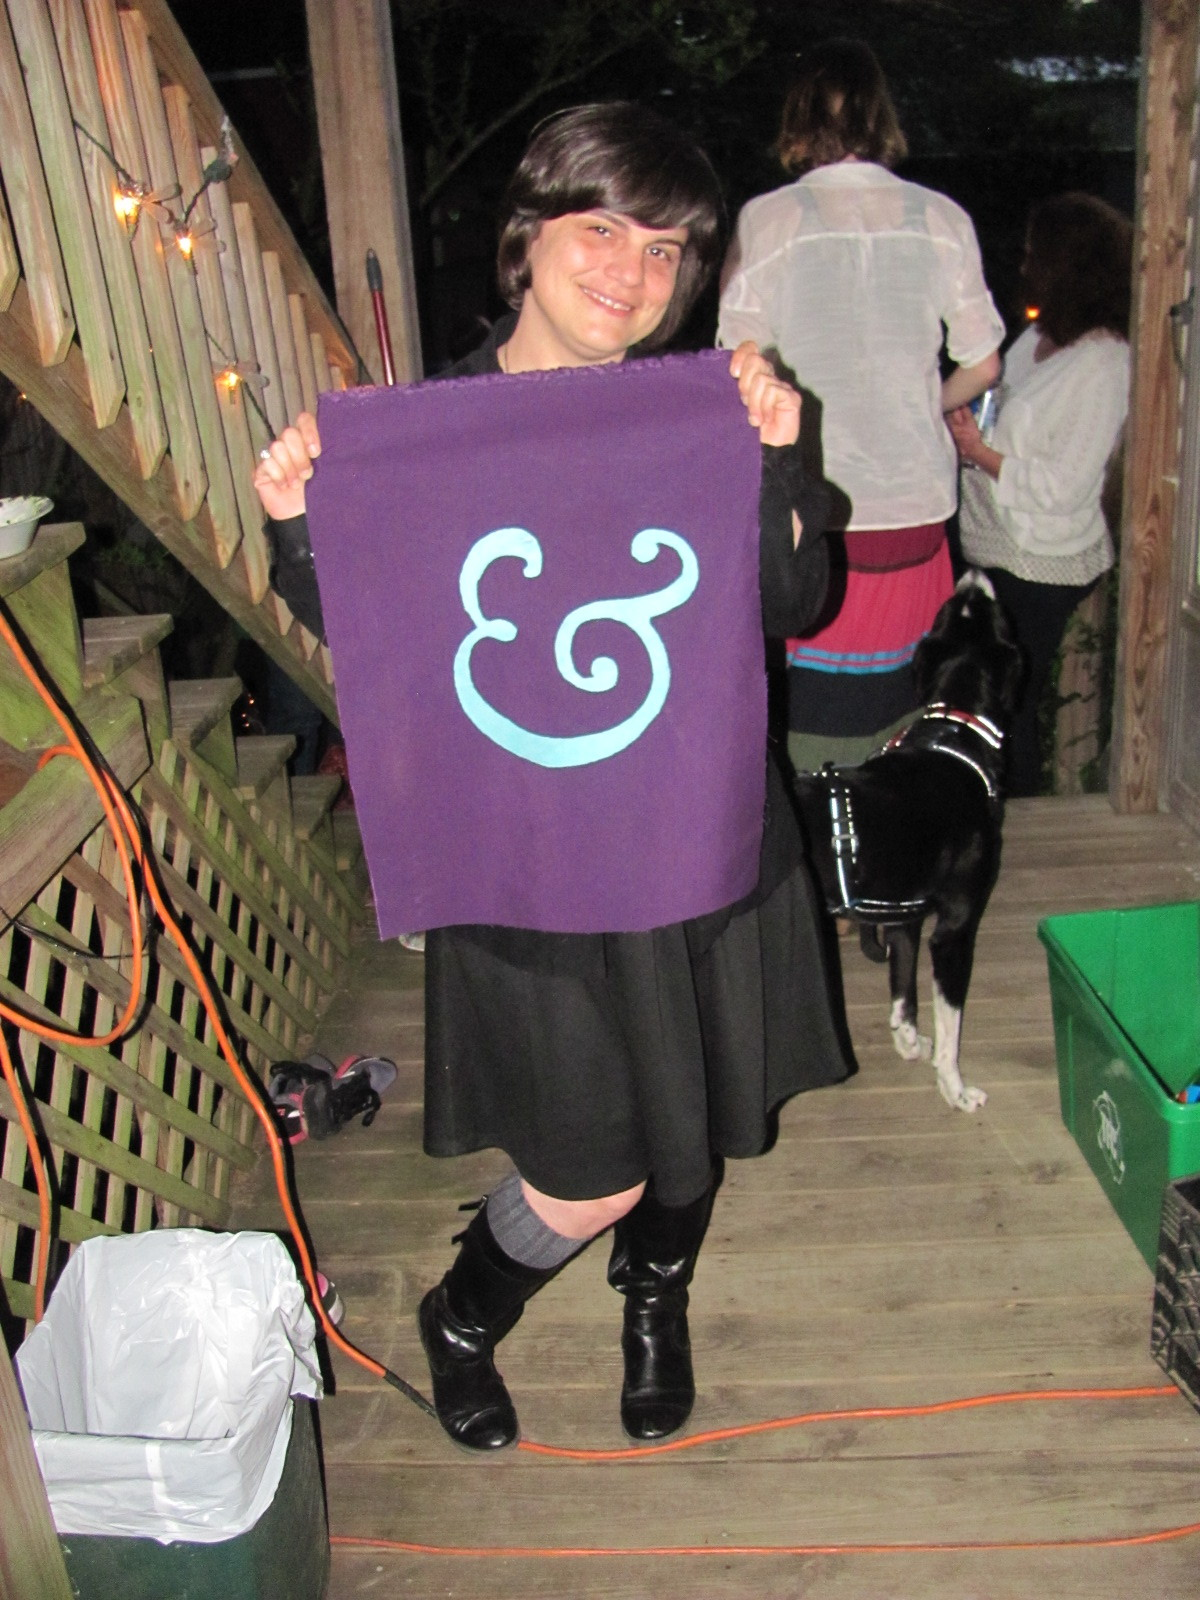 Liz holding the ampersand. Friday, at the GSEX end-of-the-semester party, we presented Dr. Hutchinson, Department Chair, with none other than a purple and teal ampersand GSEX logo screen-printed backpatch in honor of her retirement! After we had cake and other deliciousness, party-goers signed it with sharpies.